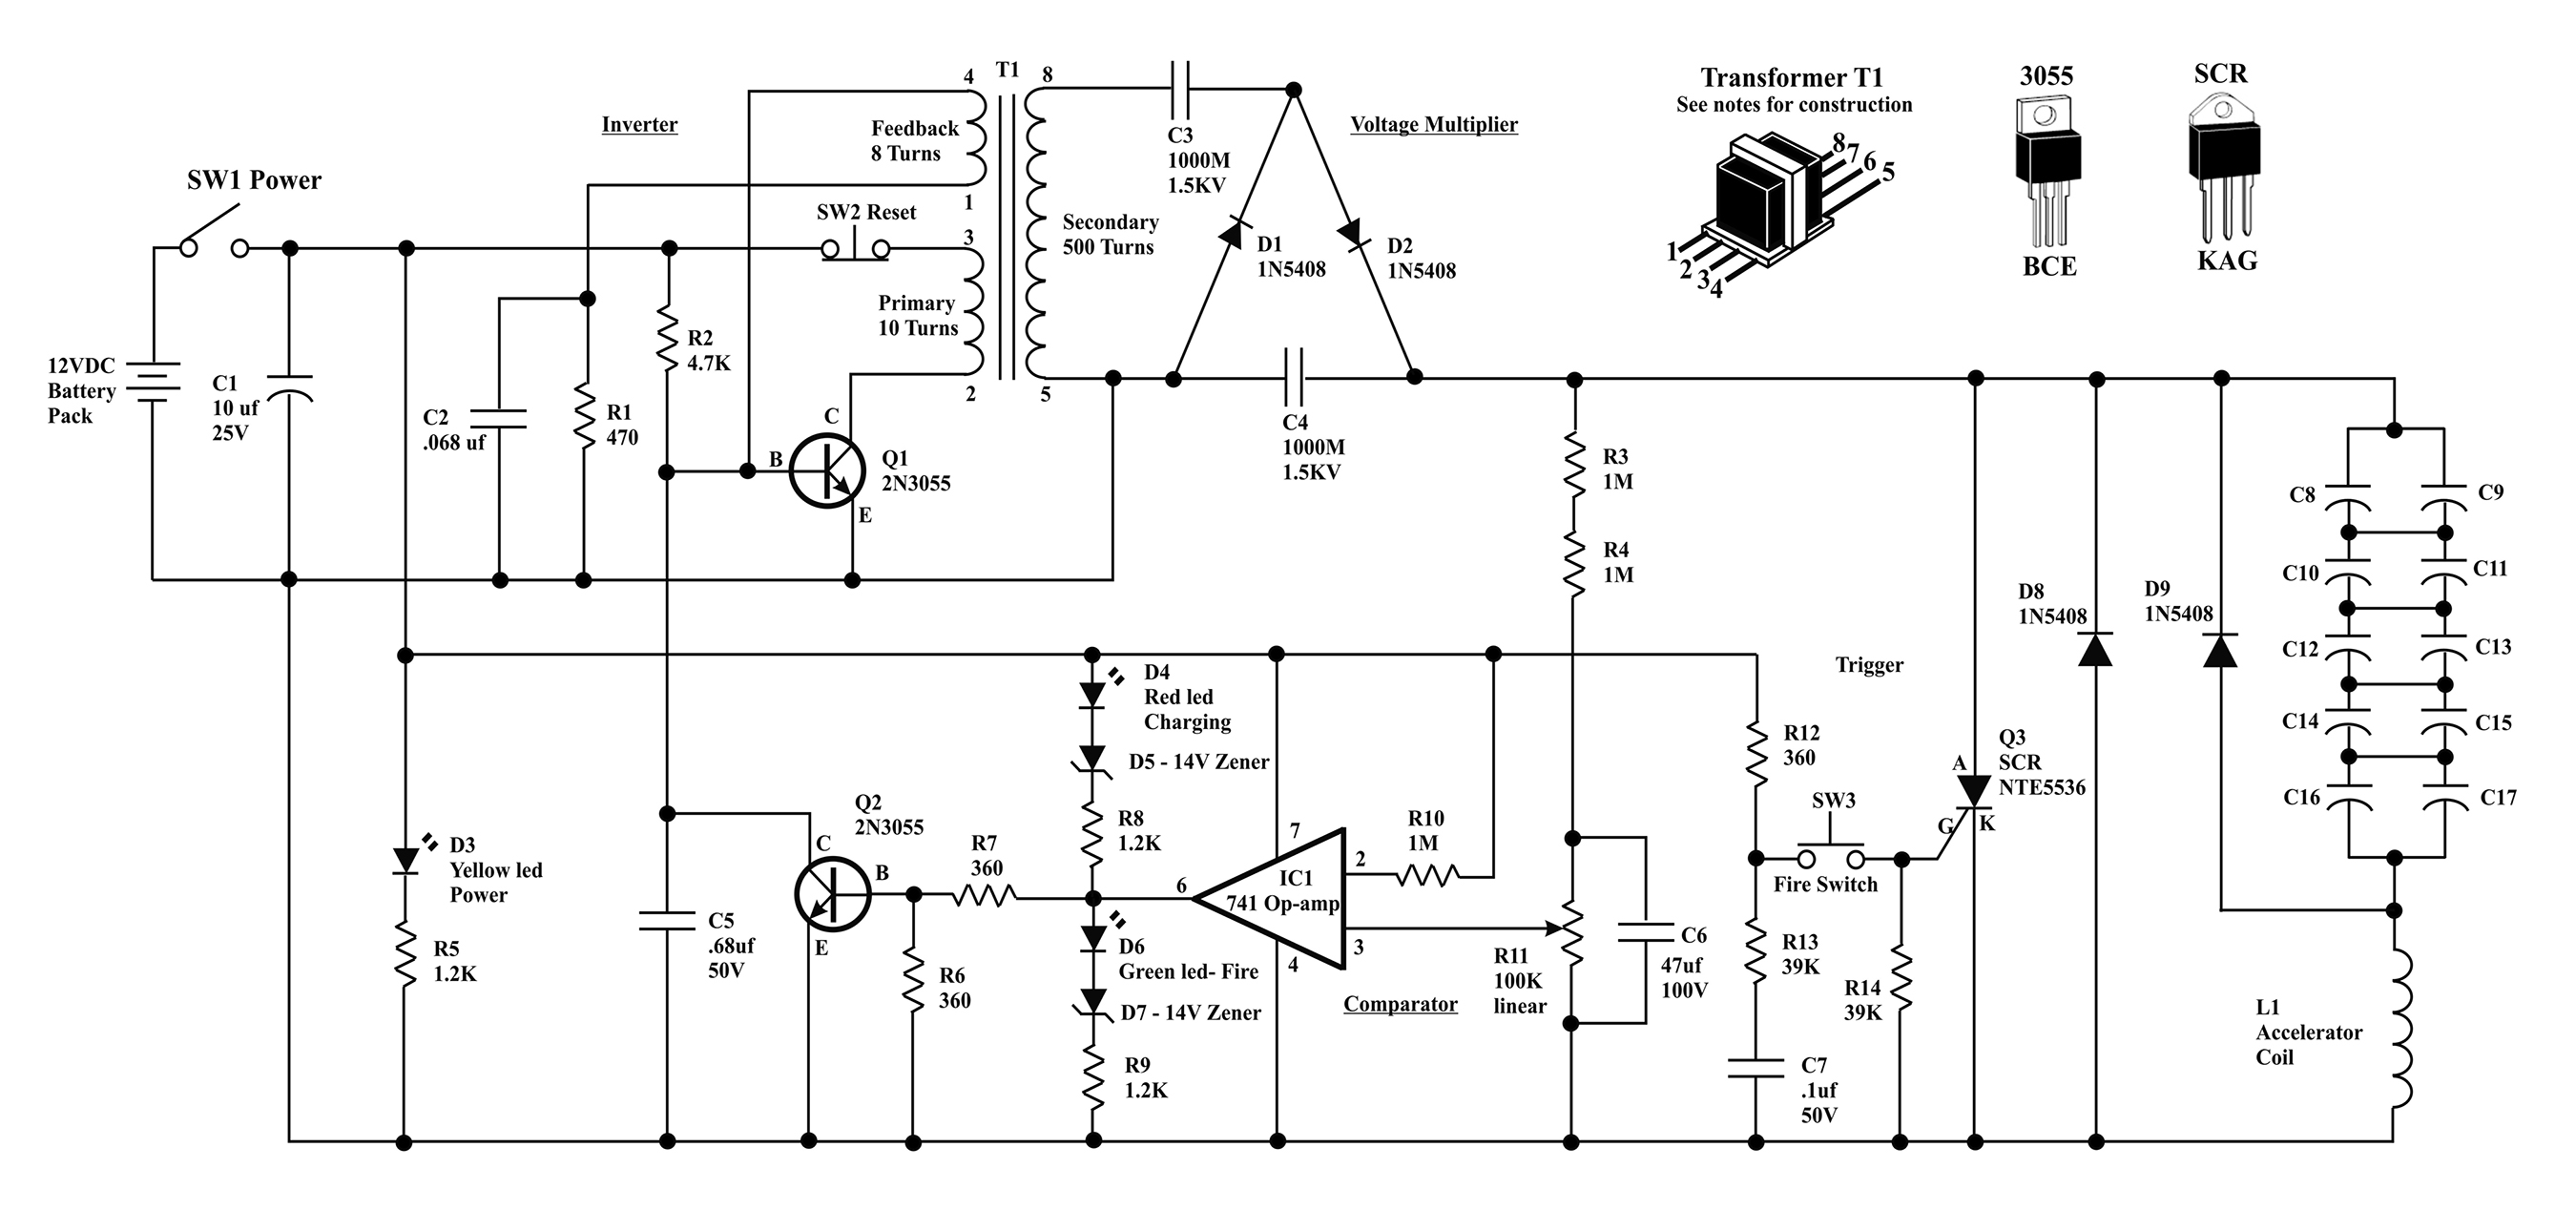 coil gun wiring diagram 2001 ford explorer sport trac fuse box electromagnetic project nuts and volts magazine